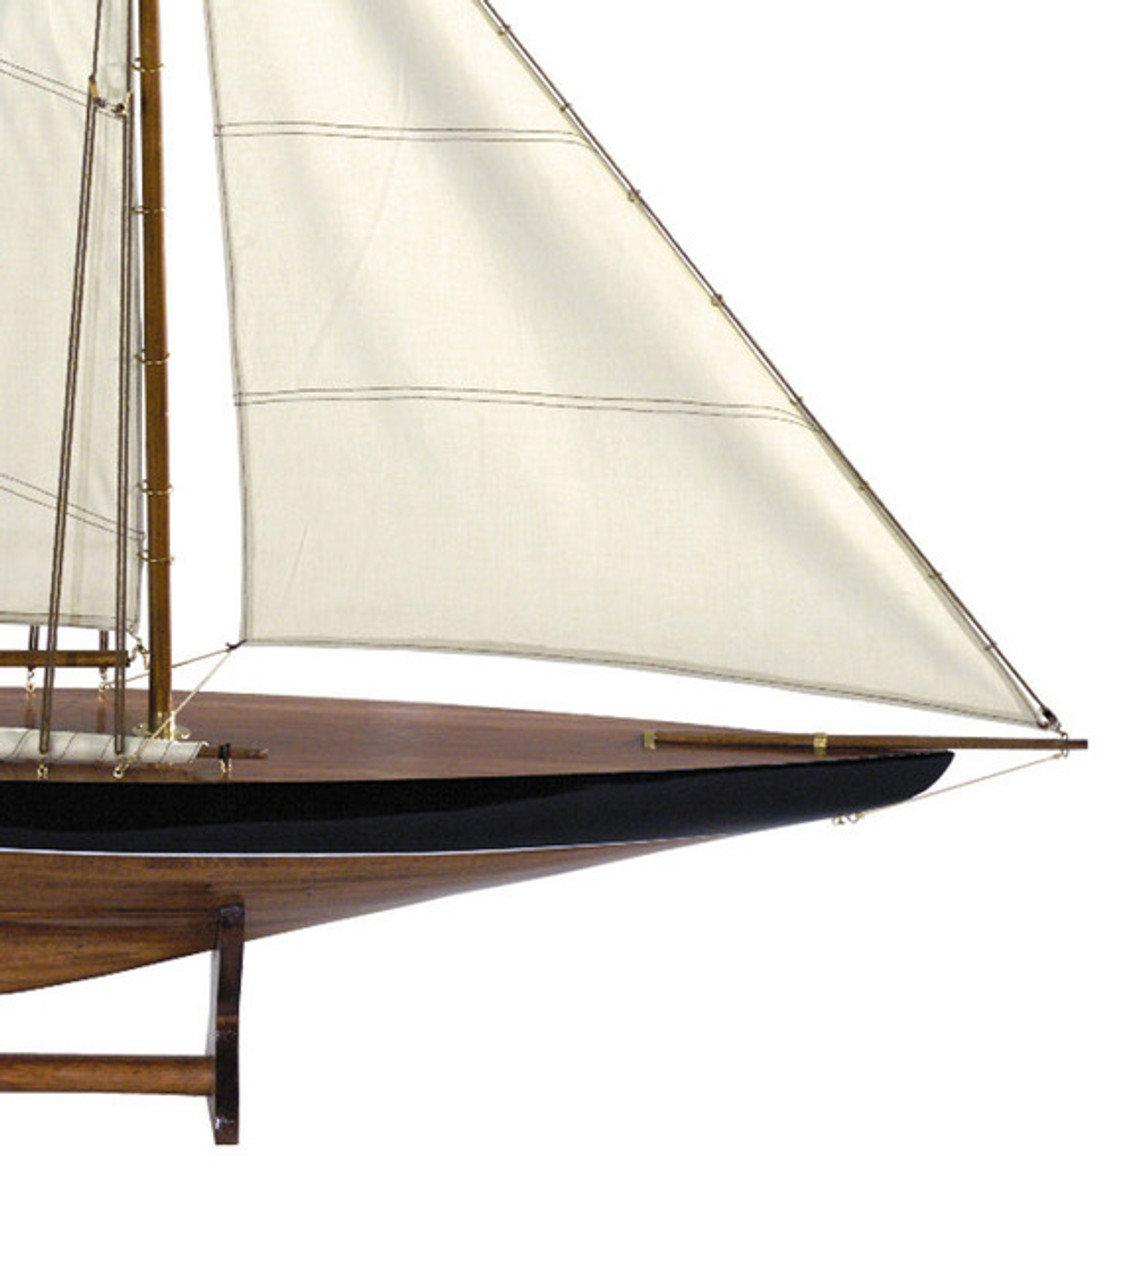 Blue Green 1901 Sail Pond Yacht 43